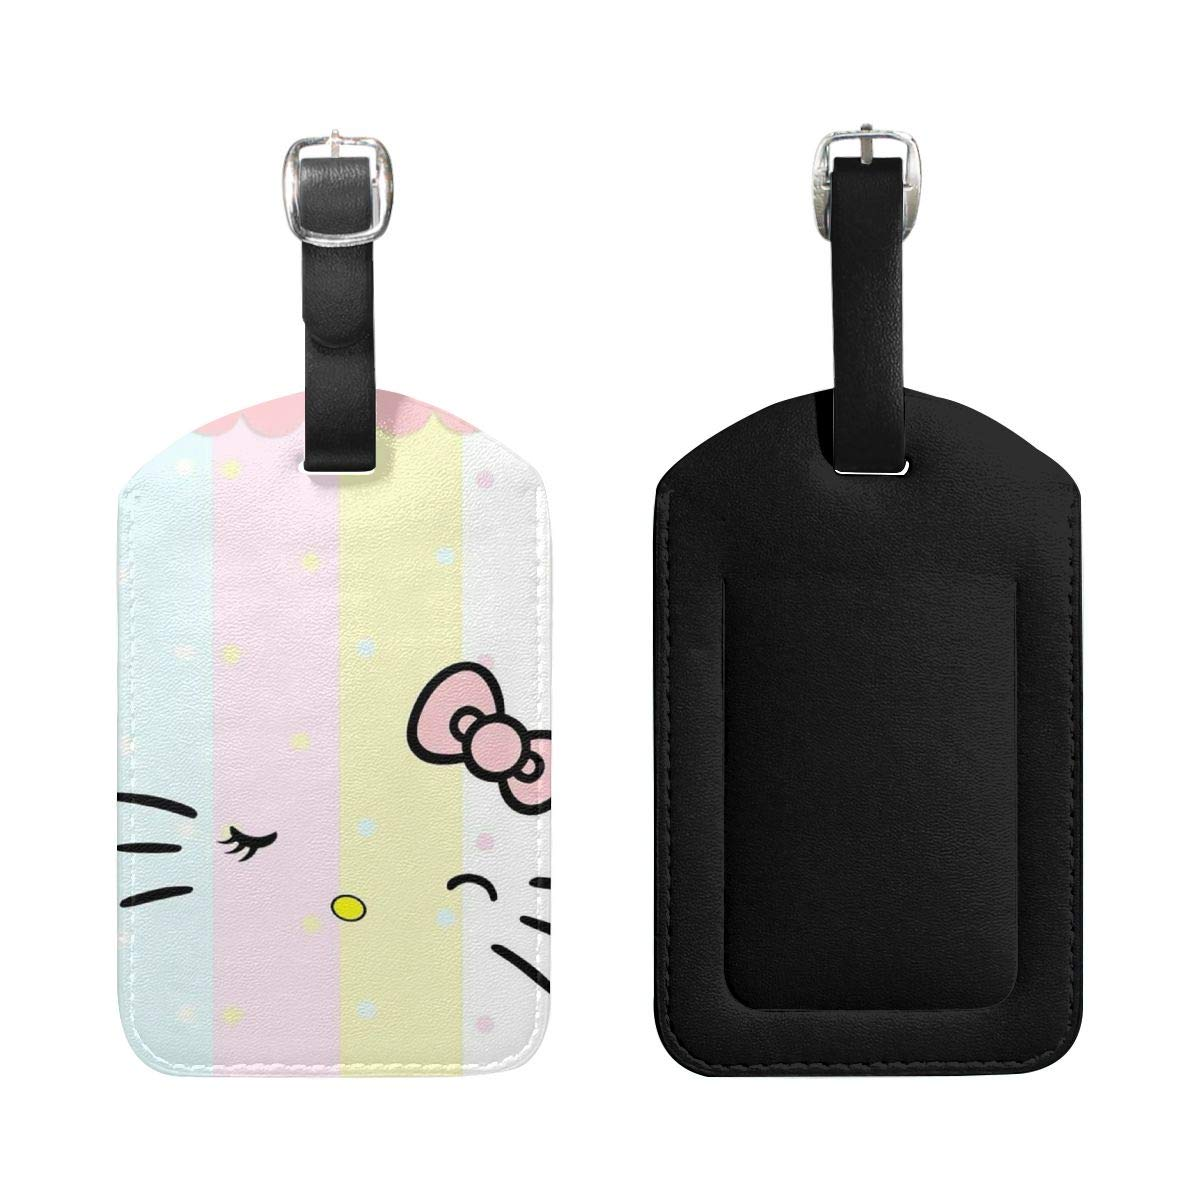 Set of 2 PU Leather Luggage Tags Light Colors Hello Kitty Face Suitcase Labels Bag Adjustable Leather Strap Travel Accessories